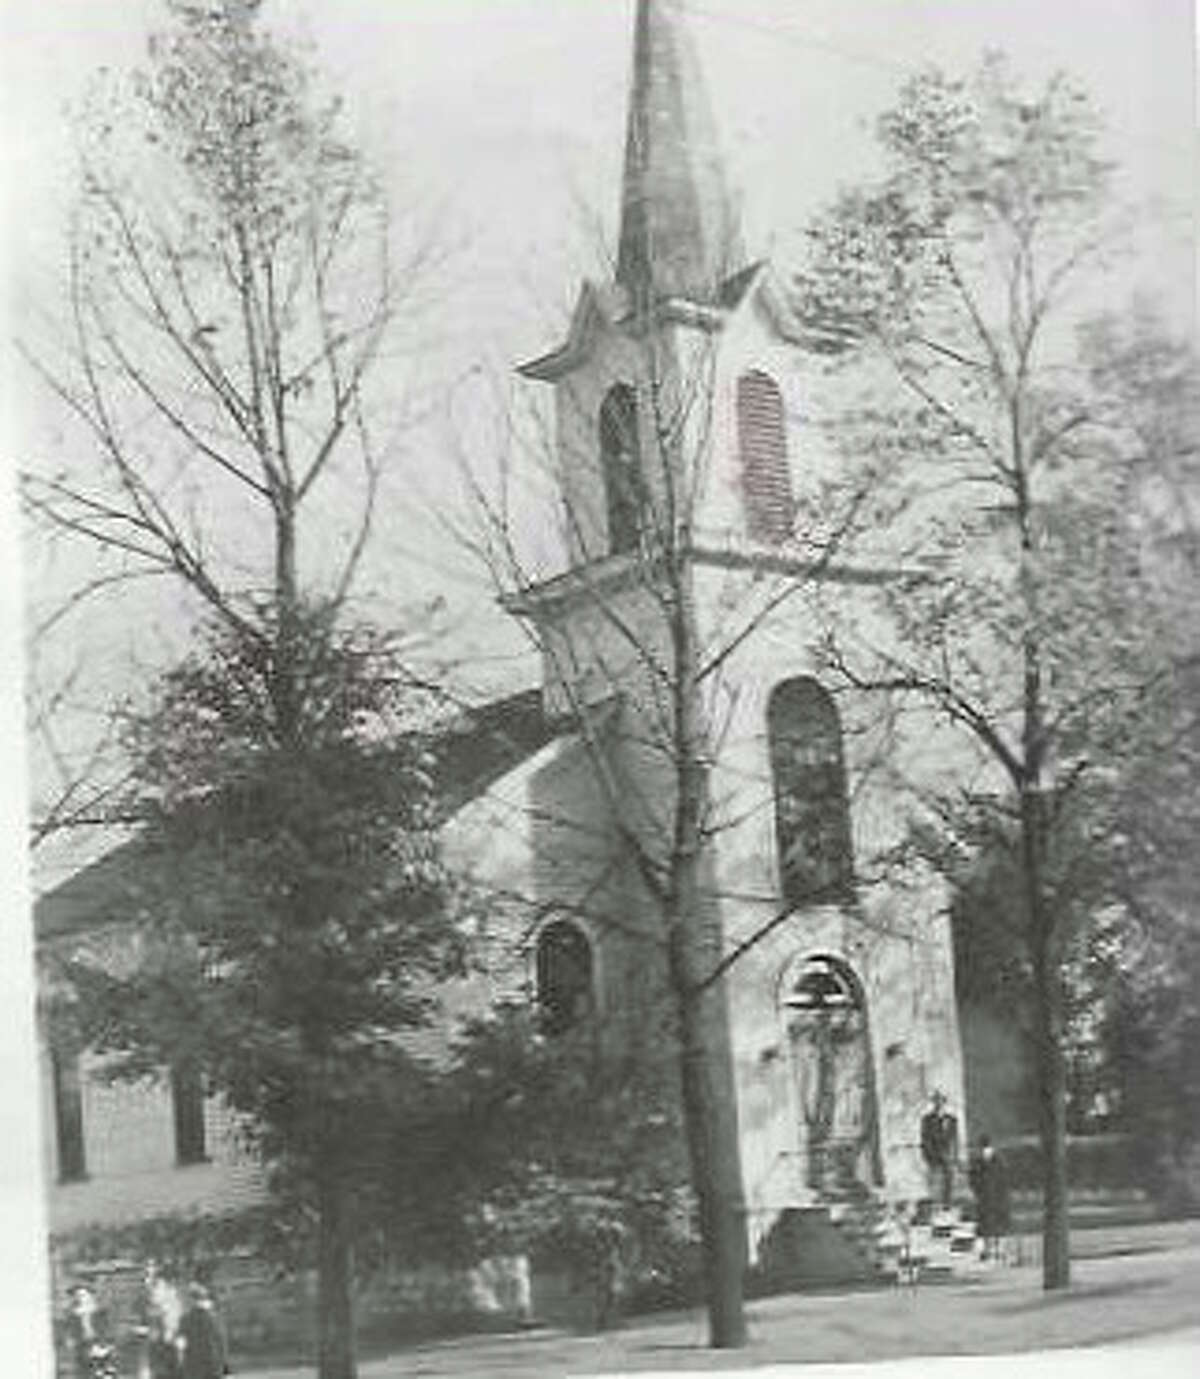 The Danish Lutheran Church, located at 304 Walnut St. in Manistee, was established in 1868.